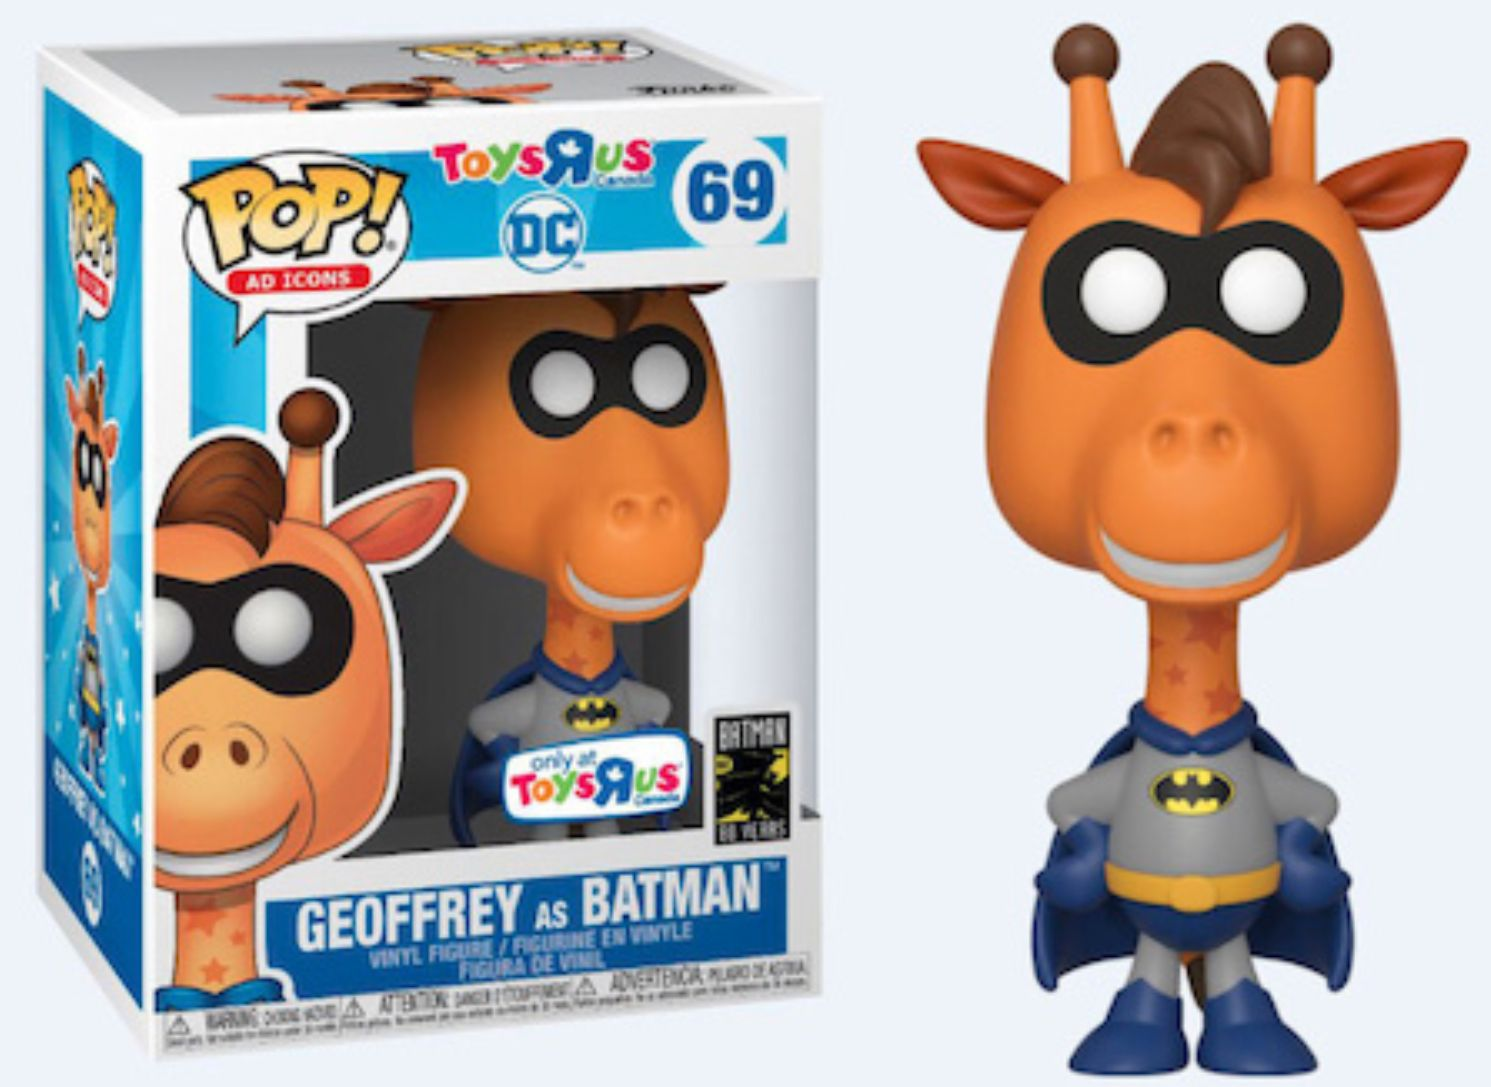 Pin by Stacy on Pop! Figures in 2020 Toys r us, Toys r